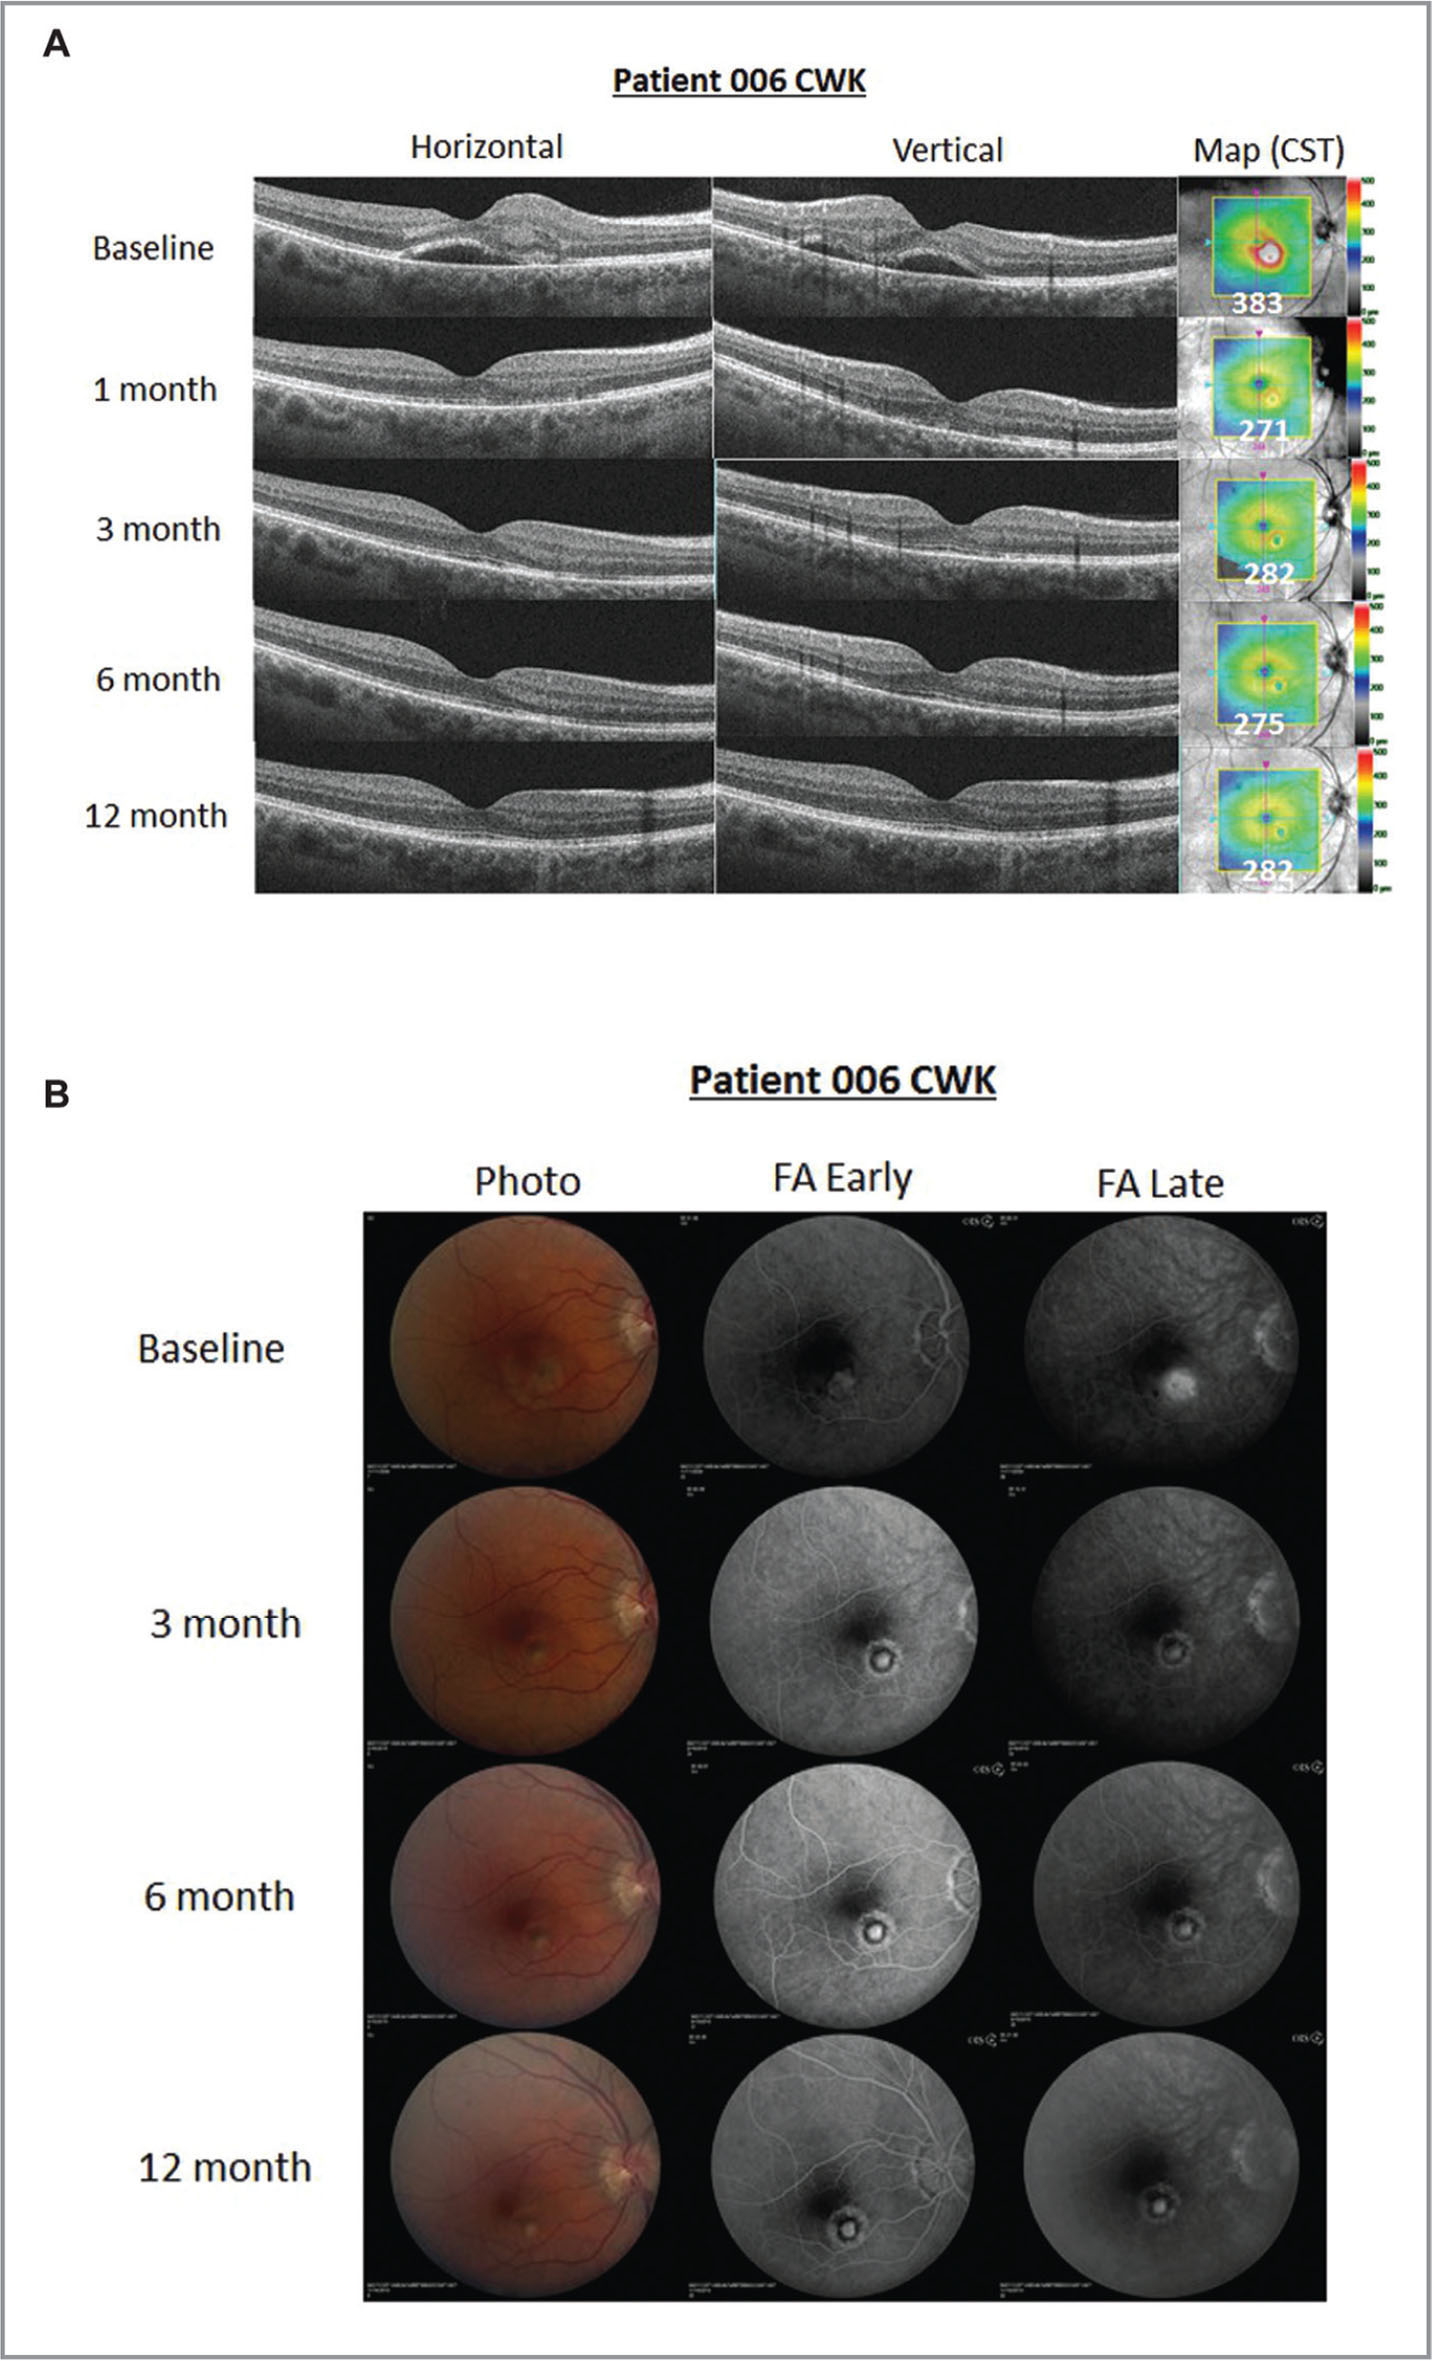 Example case images for Group A. Reduction in central subfield thickness and subfoveal cyst was observed by month 1, and elimination of late-phase fluorescein leakage was observed at month 3 in this typical patient from Group A (three injections followed by pro re nata dosing). The retinal structure improved as the subfoveal cyst observed on optical coherence tomography resolved by month 1 (A). By month 3 (first post-baseline fluorescein angiogram), the late subfoveal leakage has resolved (B).